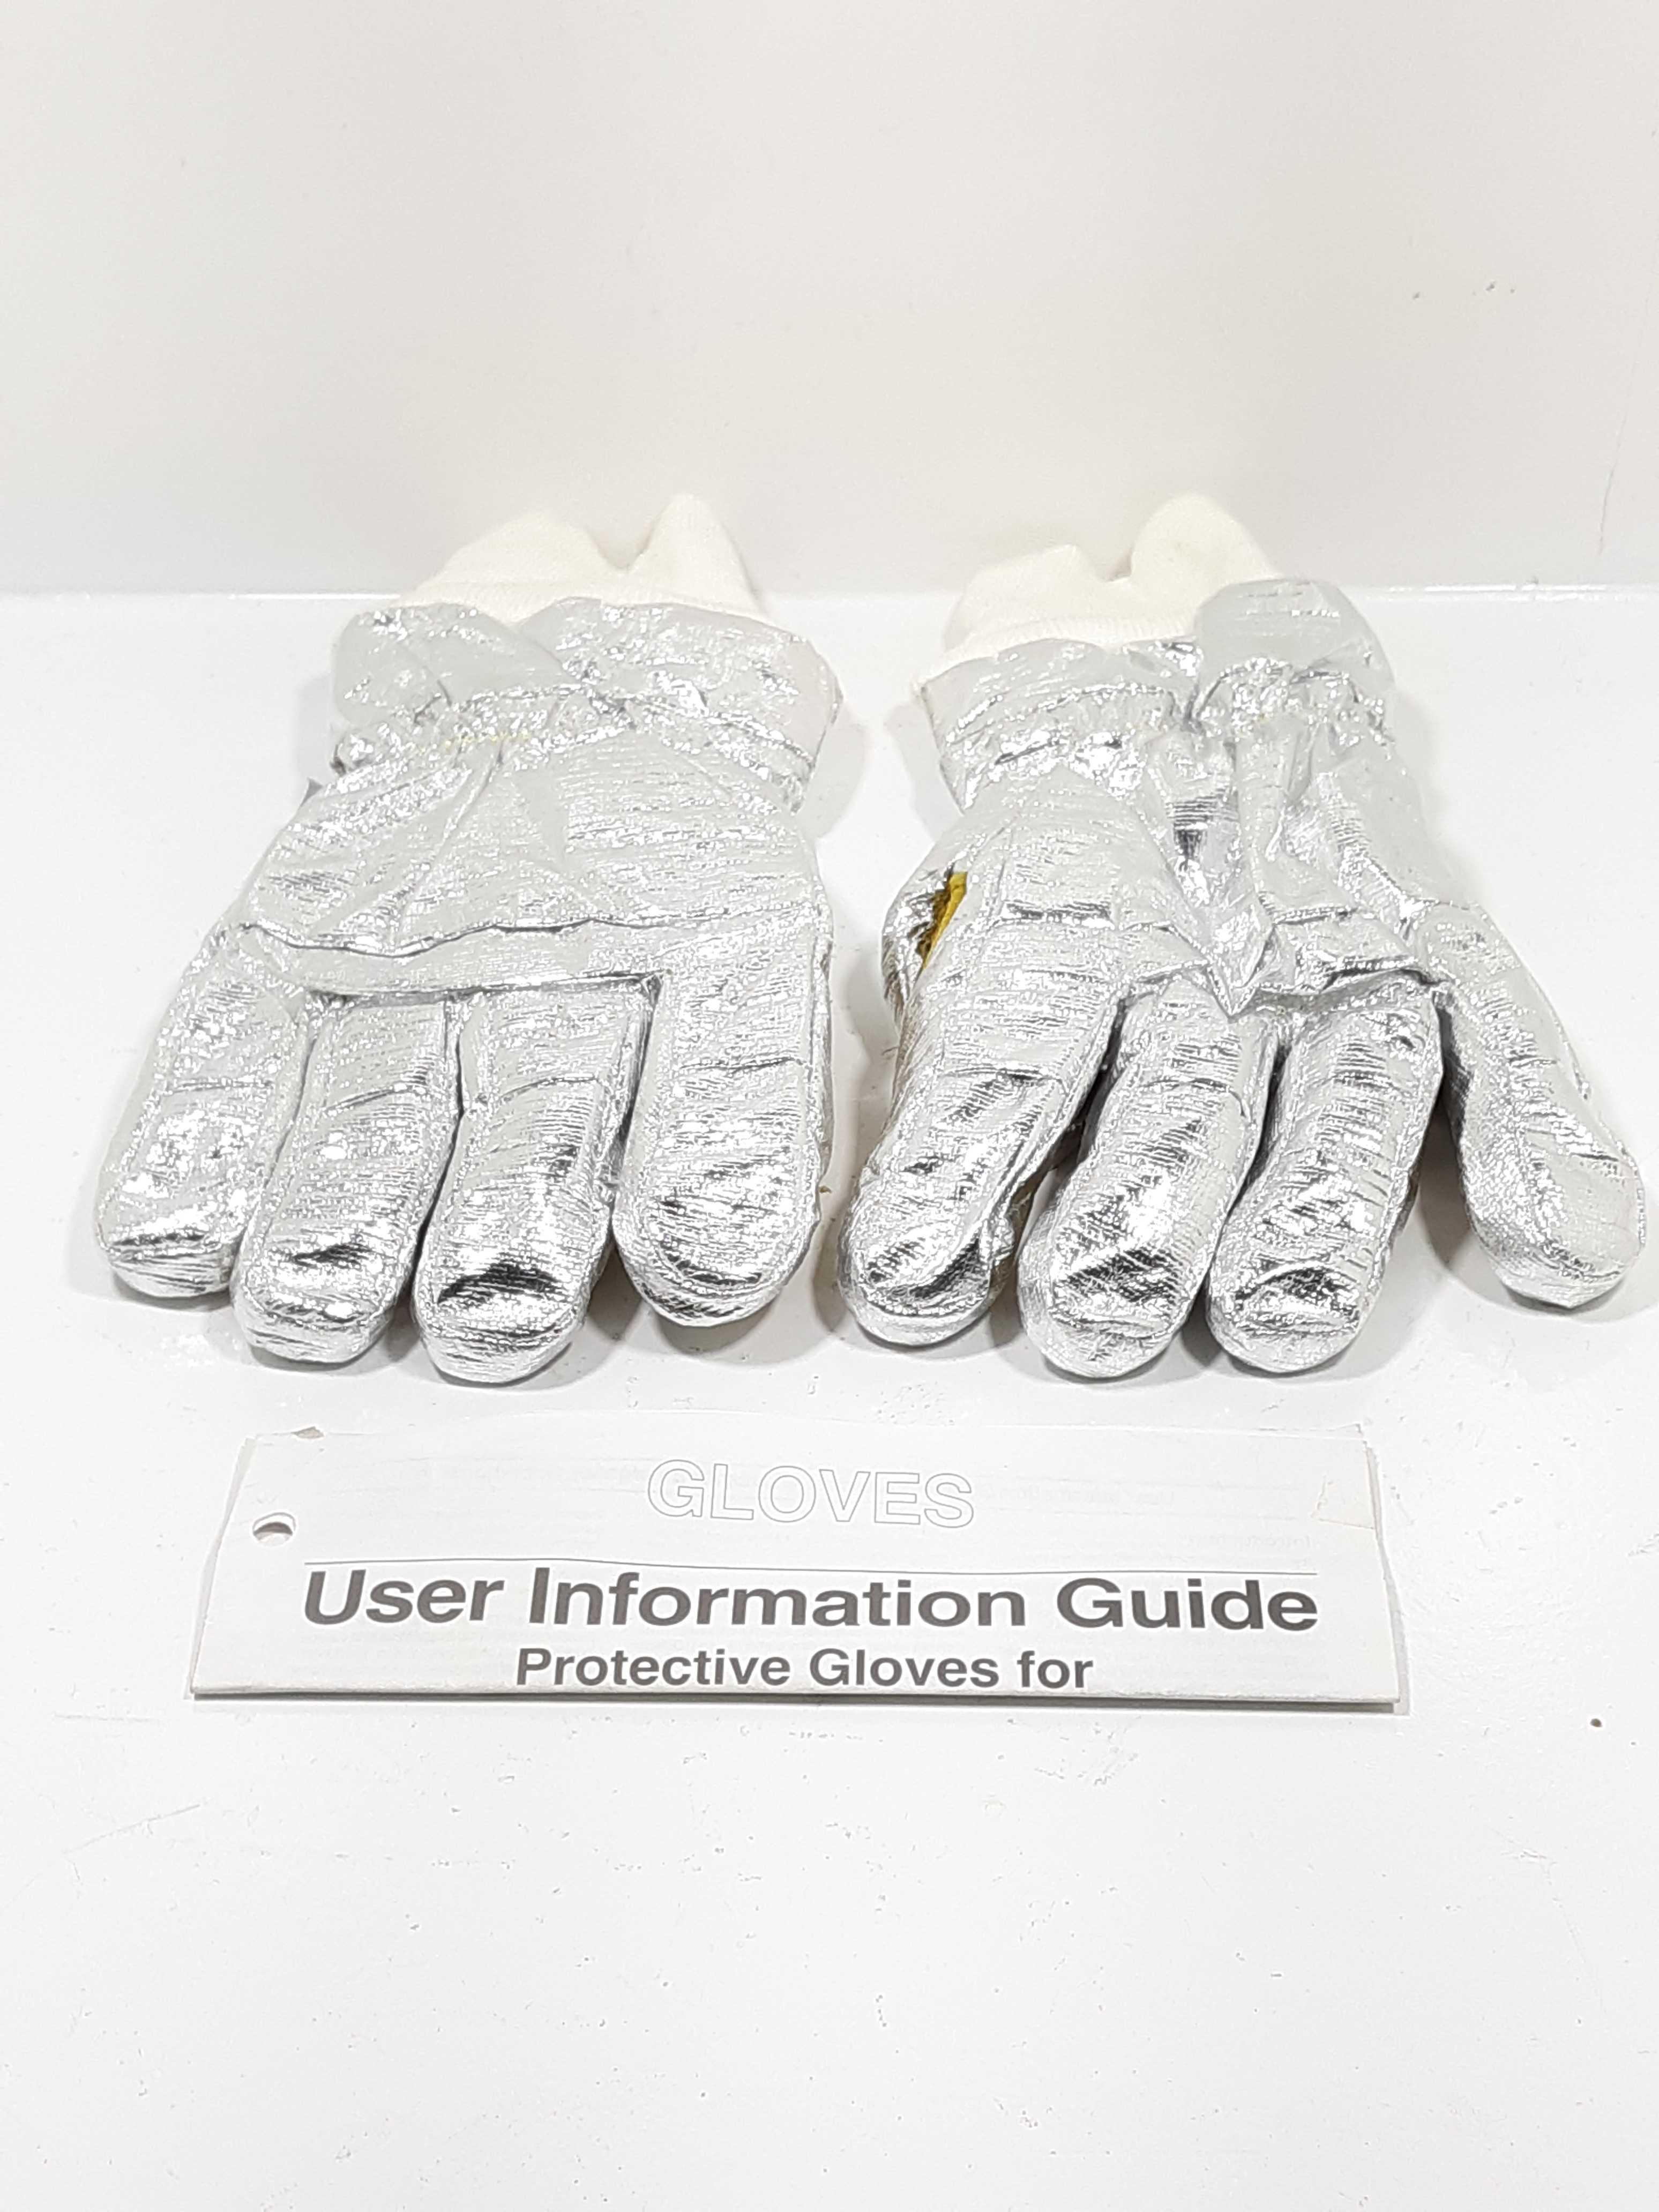 American Firewear GL-BPR-RWA-3X Aluminized Proximity Firefighting Gloves 3X